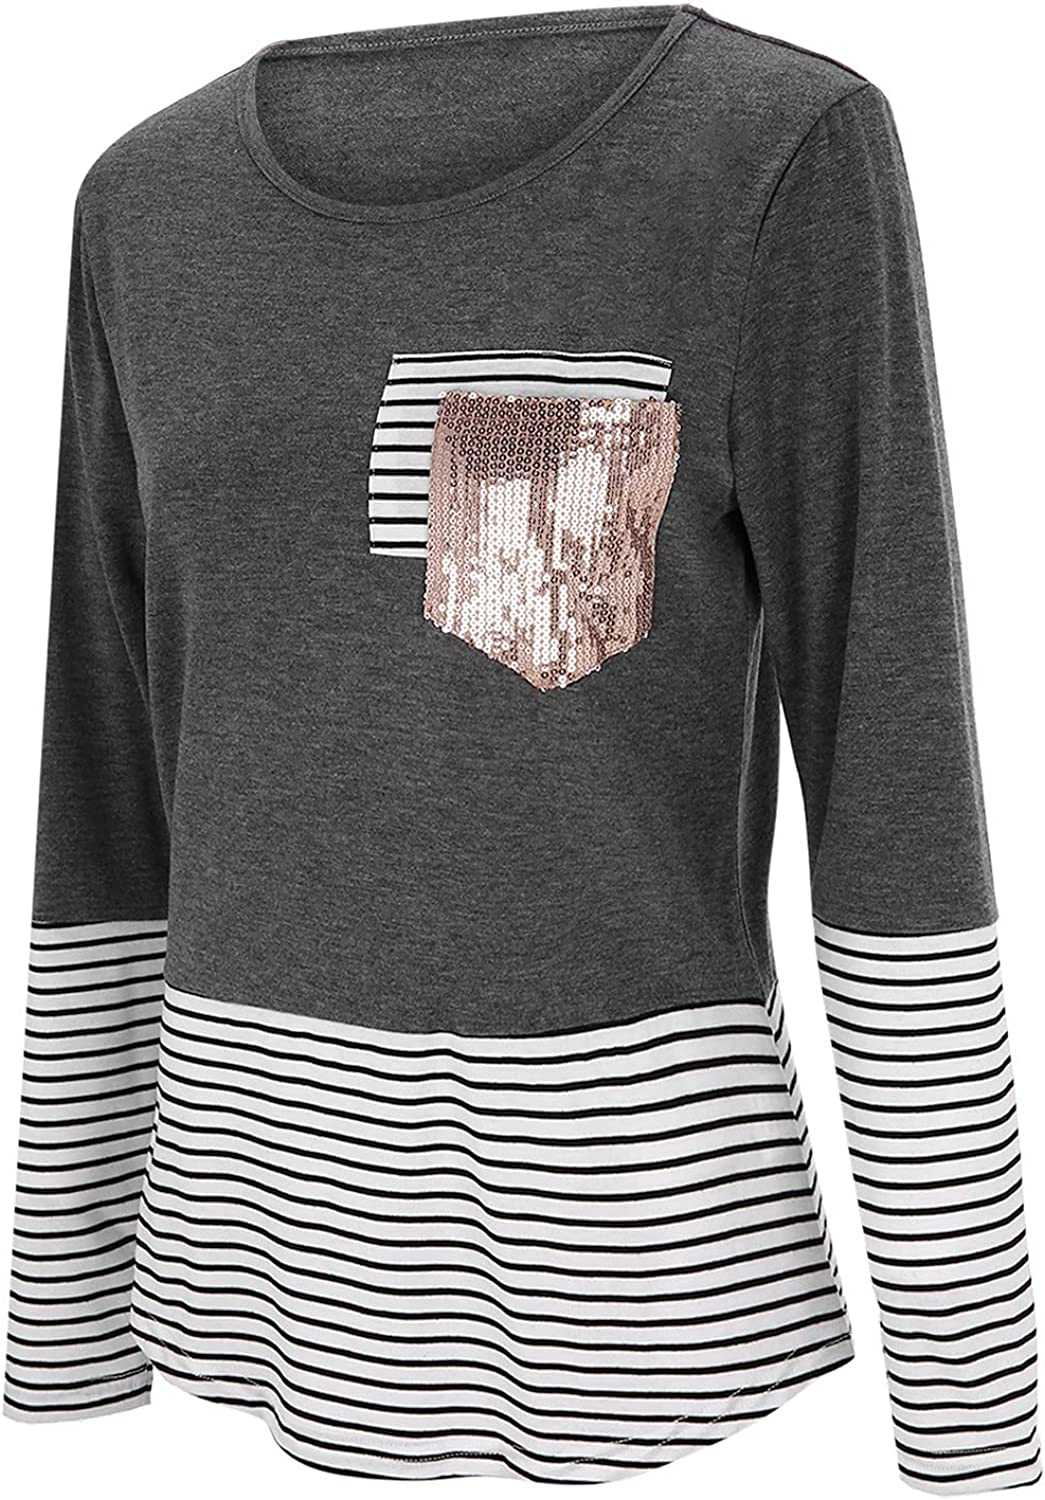 Bottoming Shirts for Women Trendy Long Printed Stitching Max 52% OFF Elegant Stripe